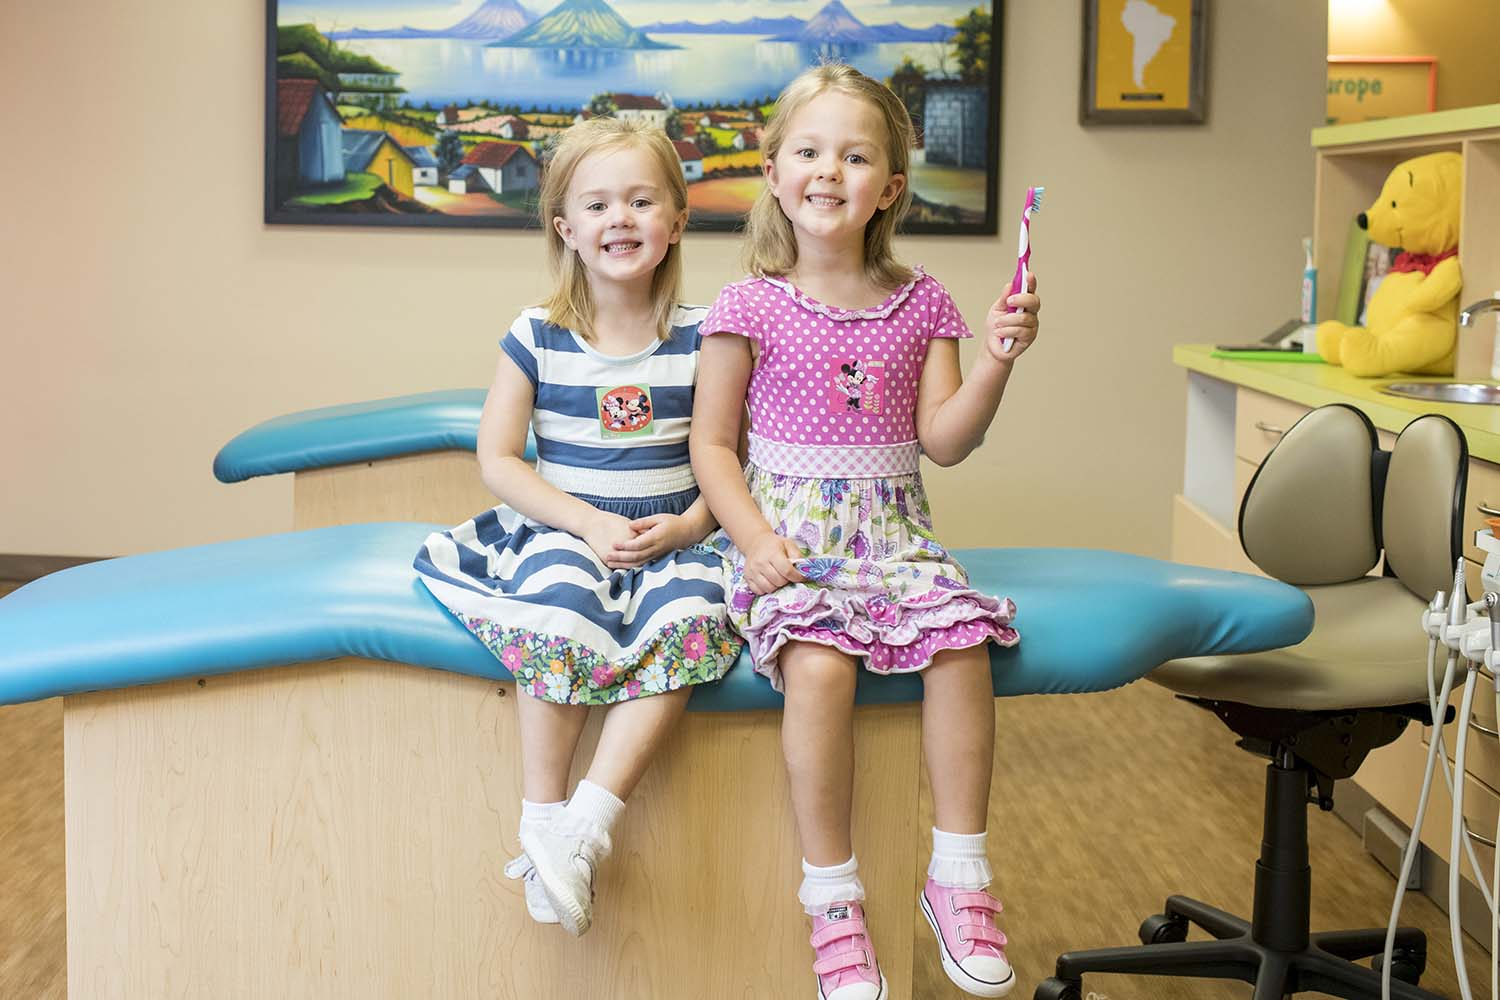 Dental care for kids Shelby Pediatric Dentist Birmingham AL Homepage Office 9